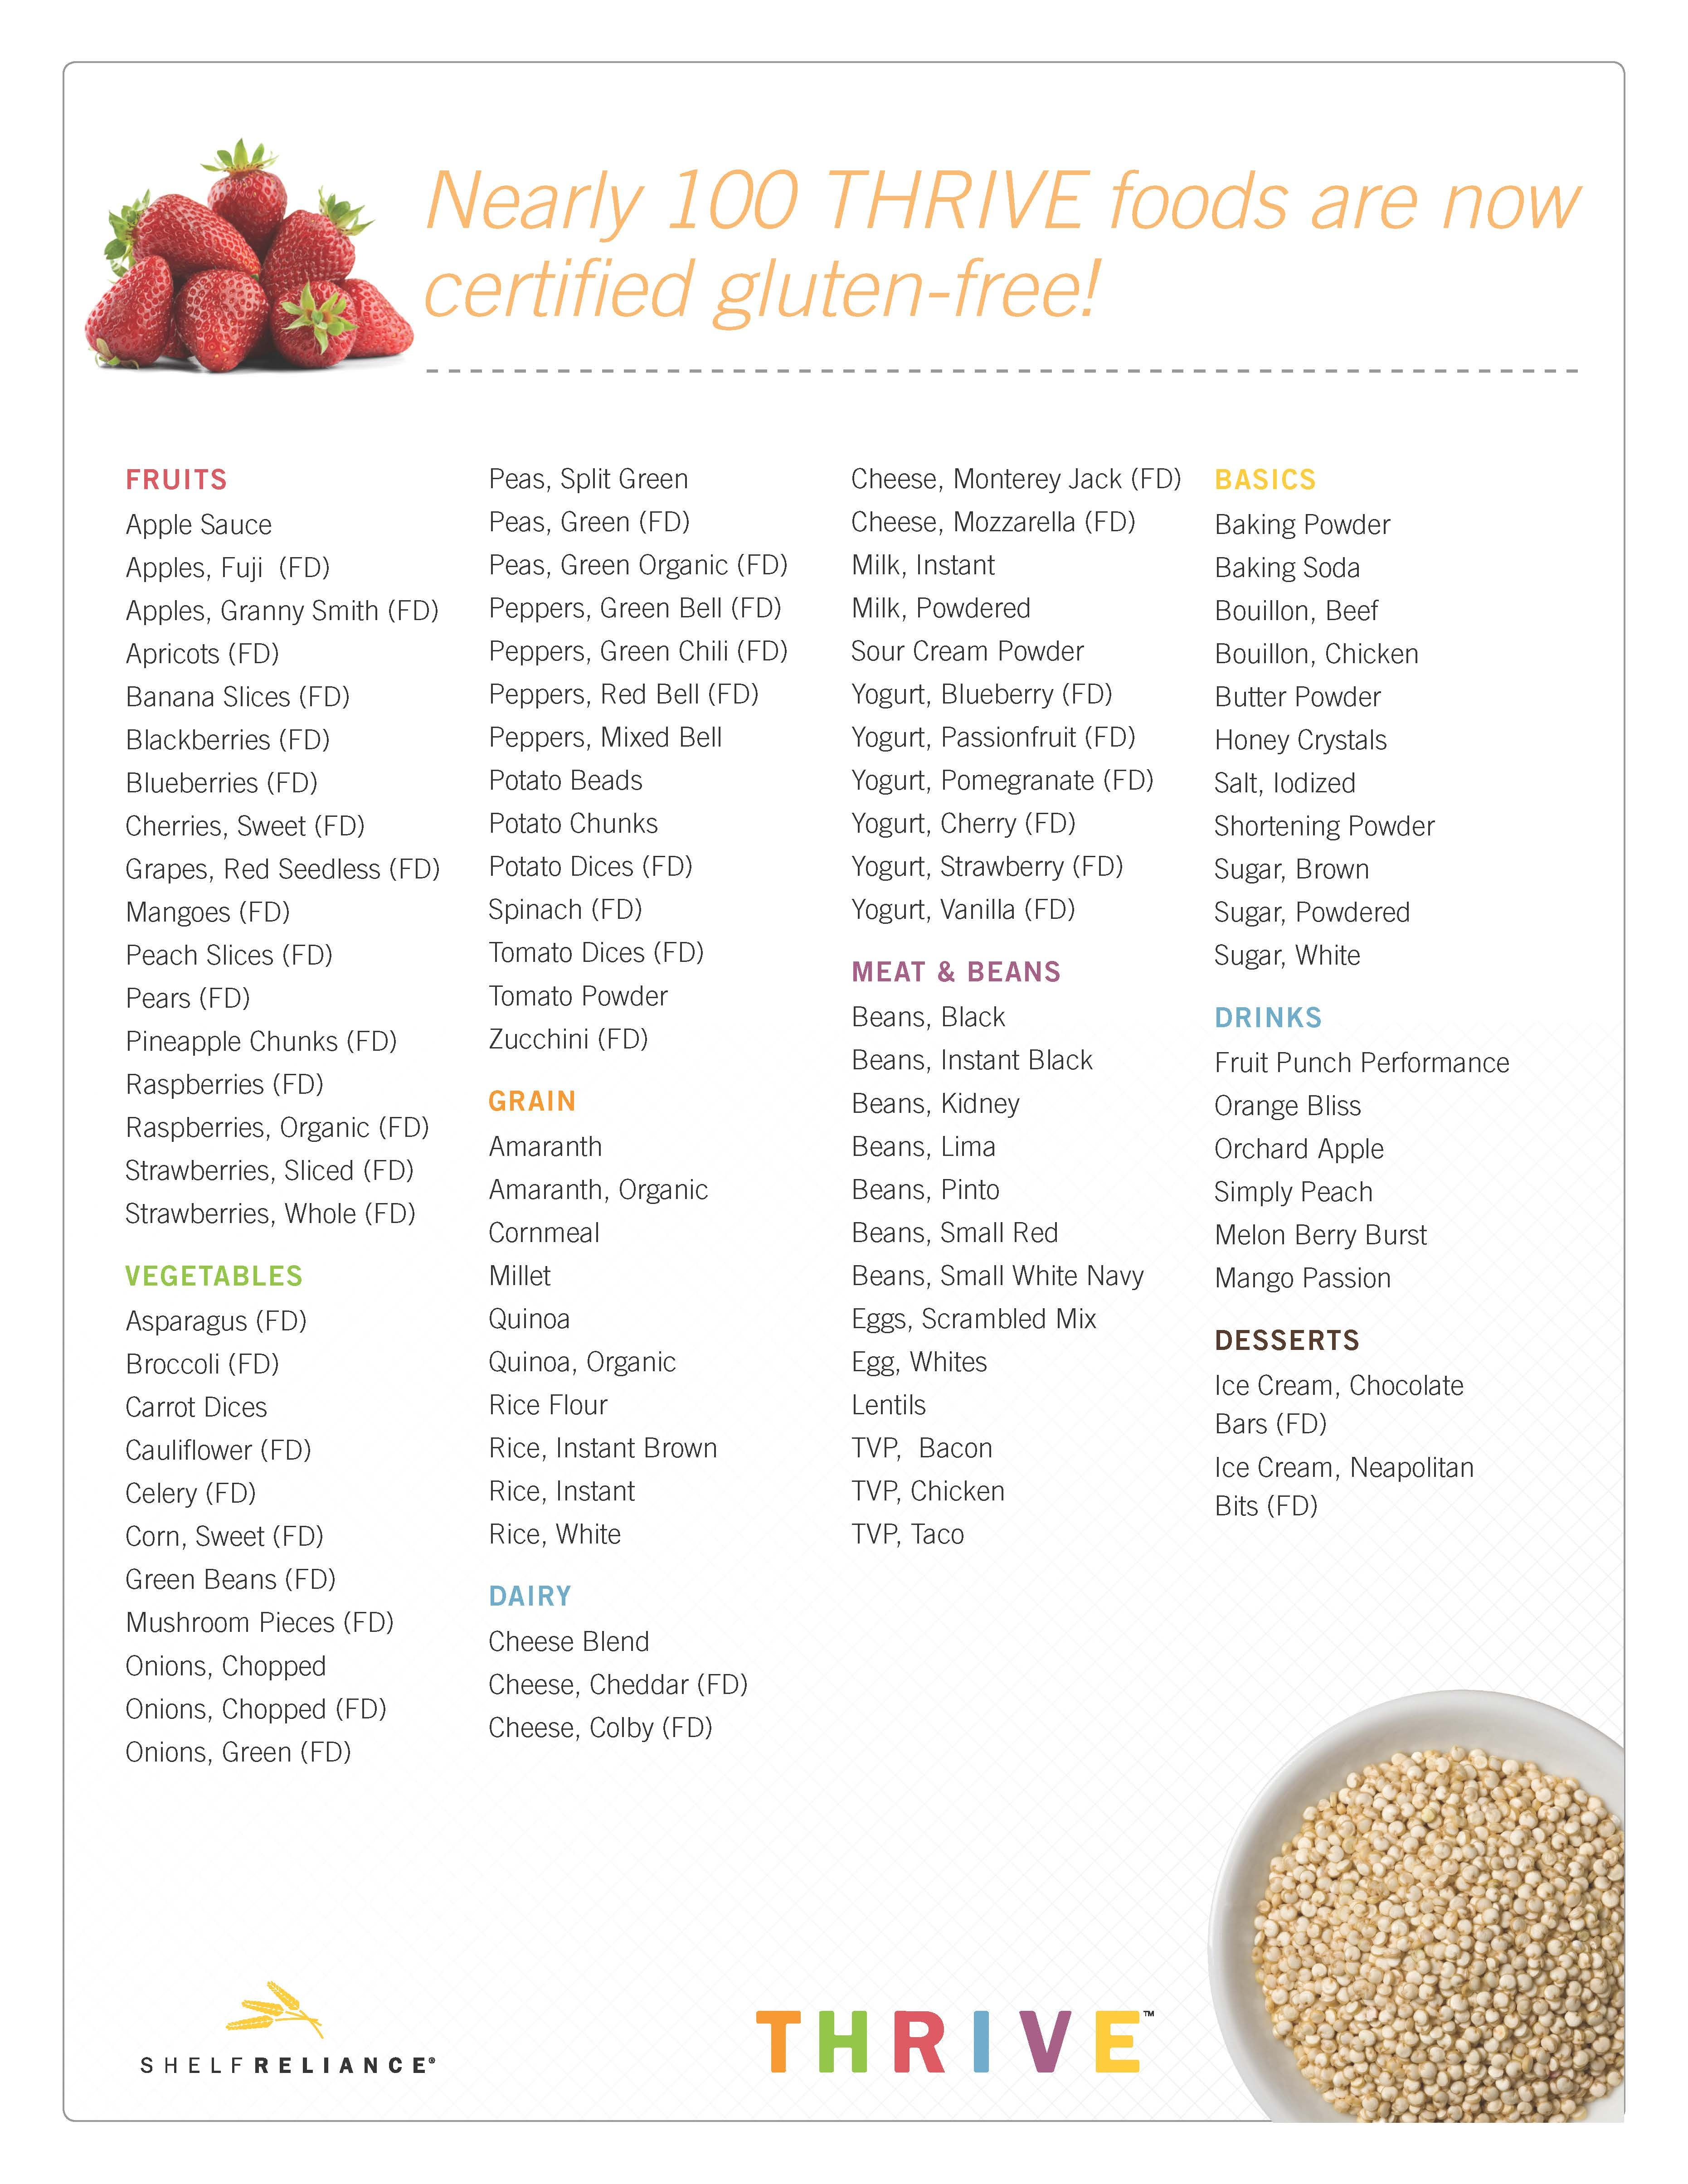 thrive diet food list